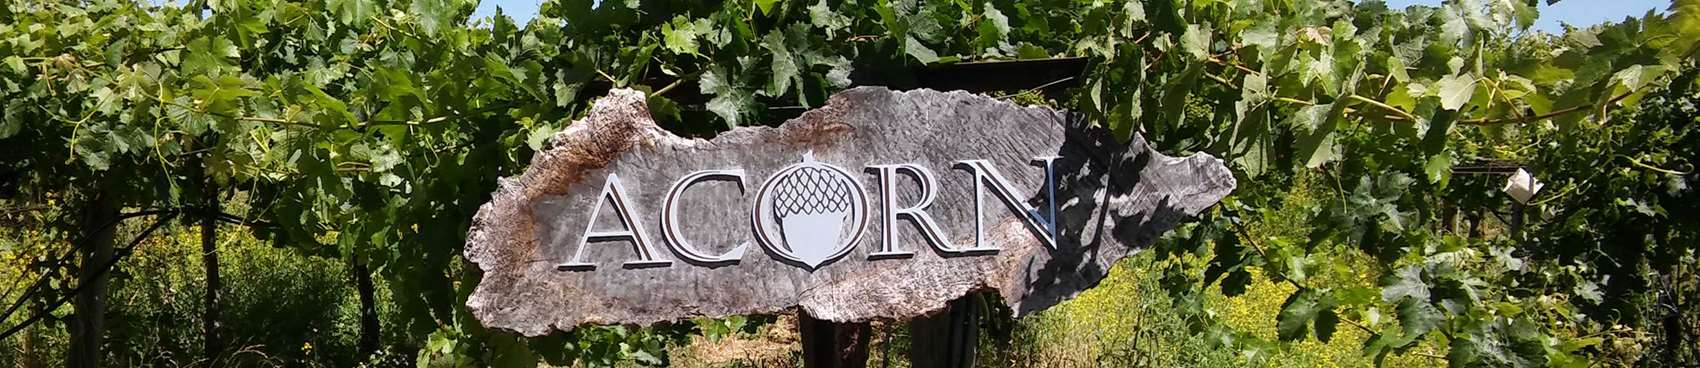 ACORN Winery / Alegría  Vineyards